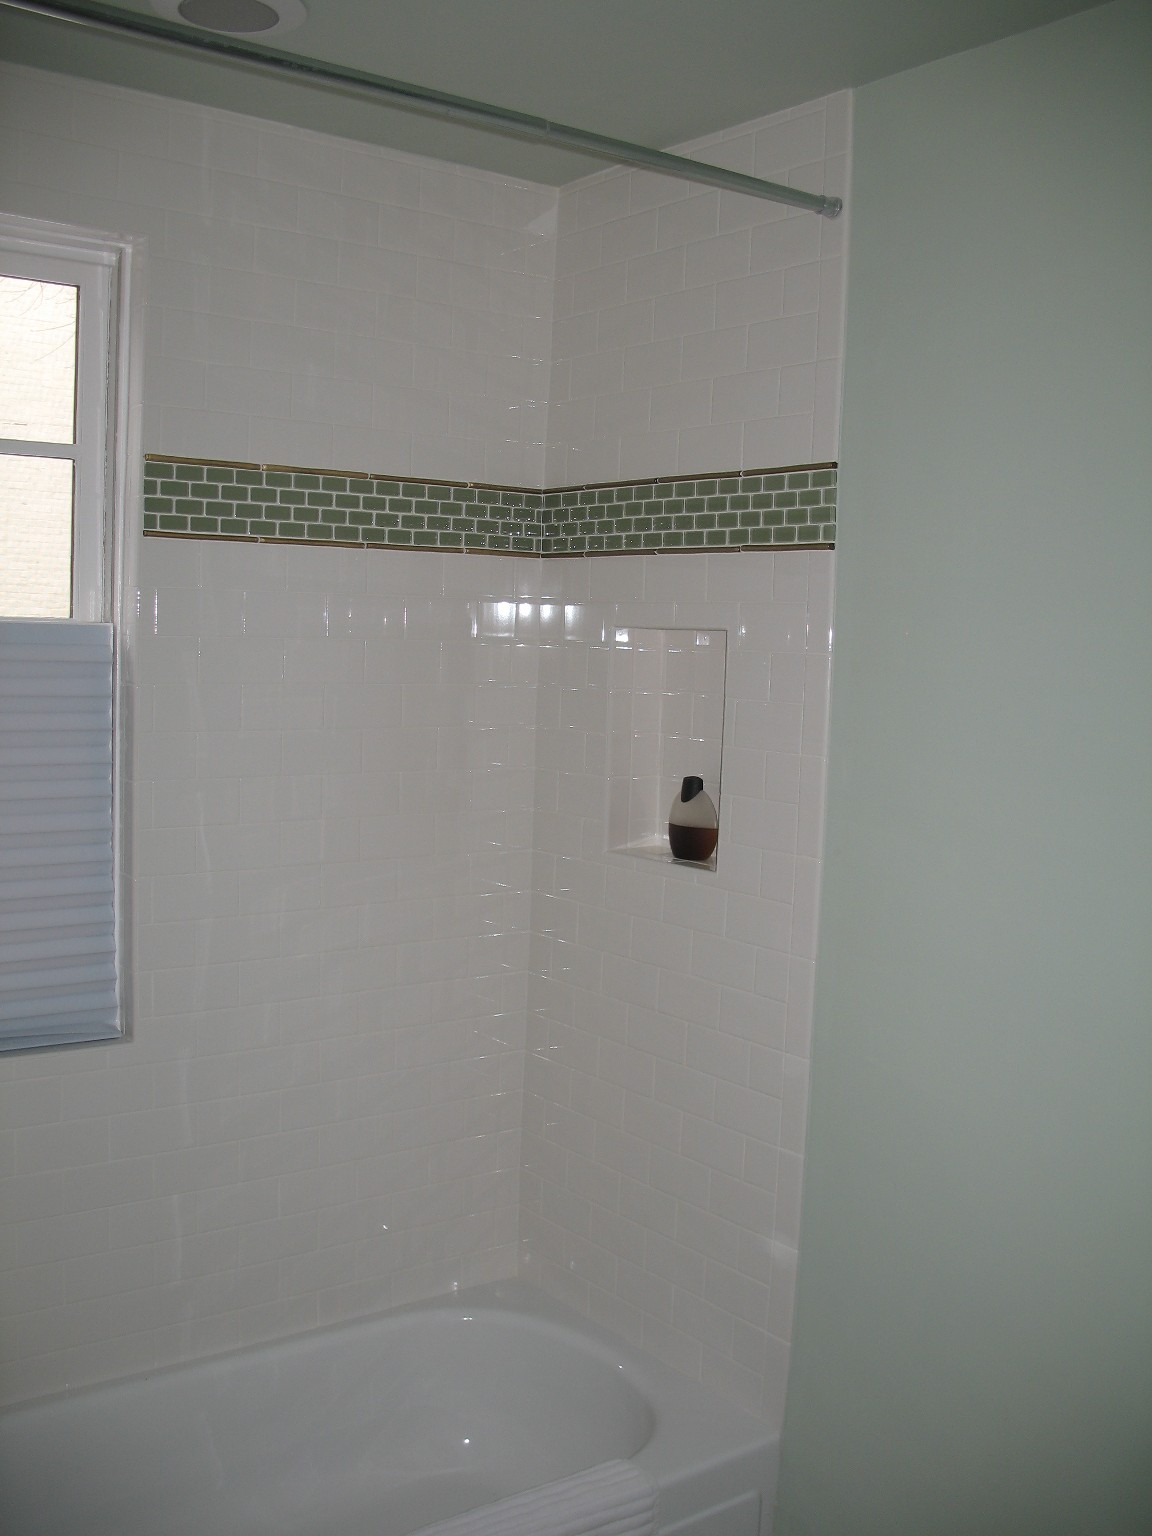 choose white subway tile shower and planted sink above white bathtub inside small bathroom - Subway Tile Patterns Ideas